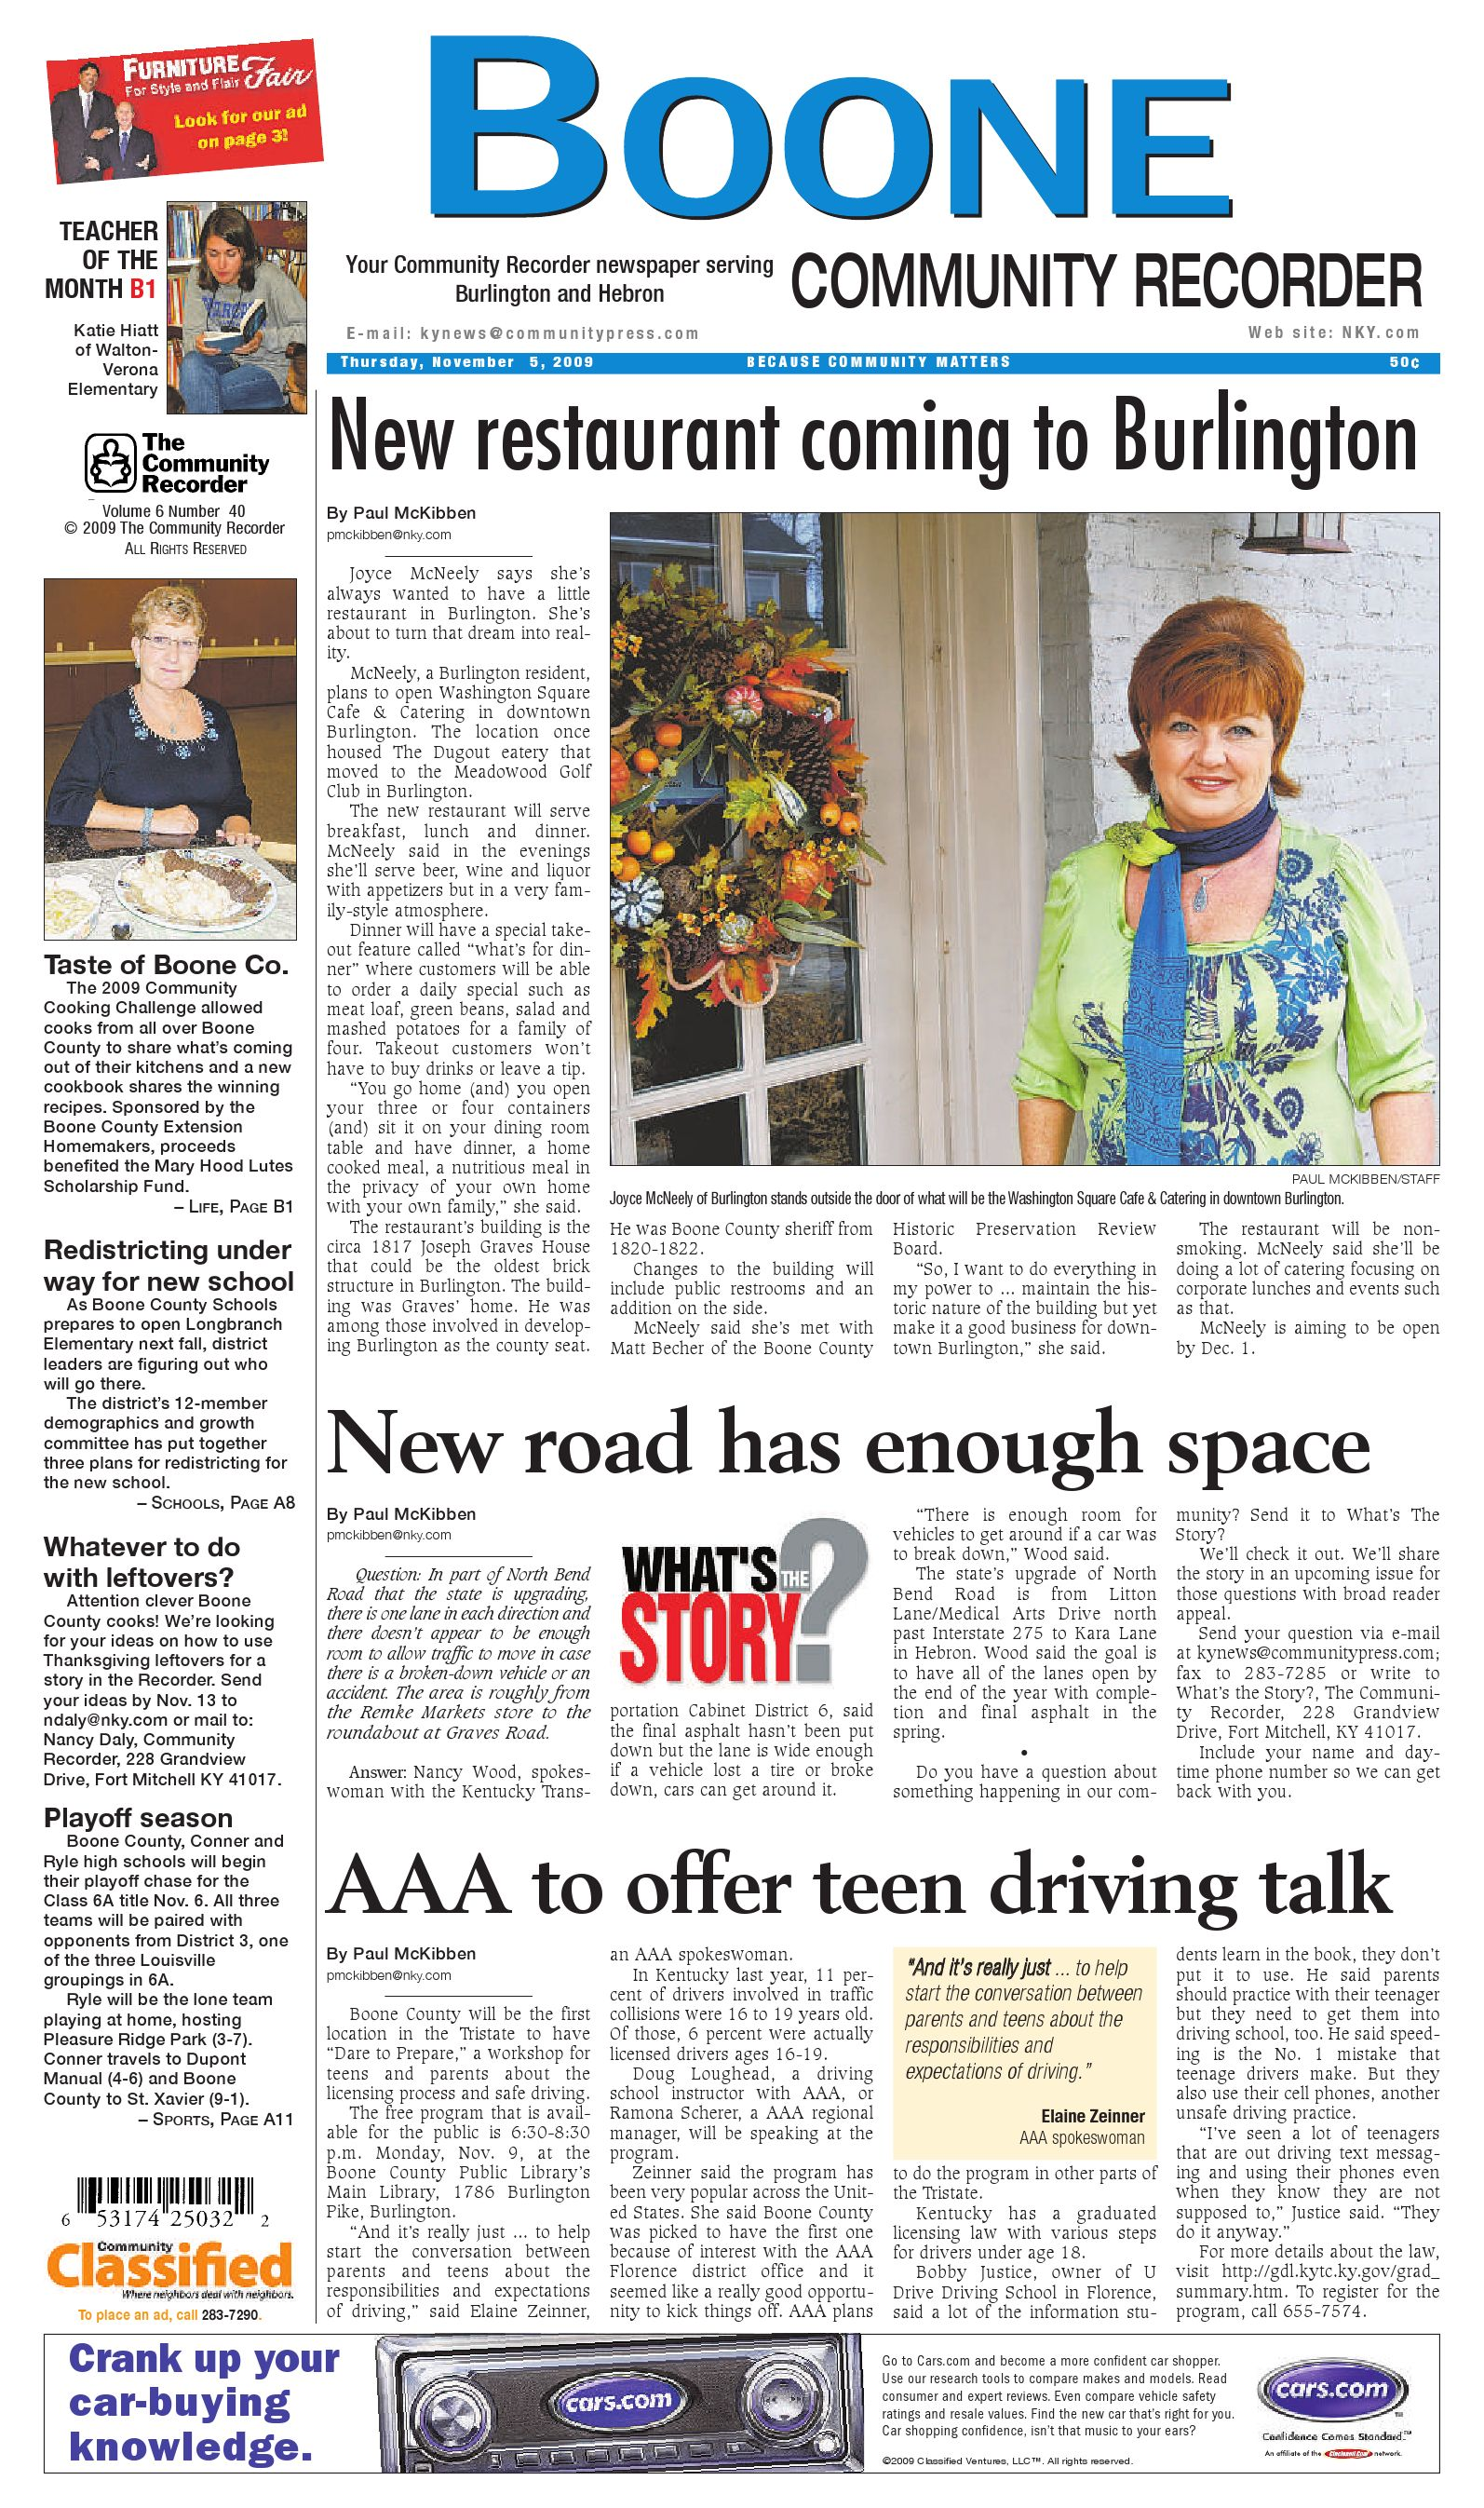 boone-community-recorder-110509 by Enquirer Media - issuu